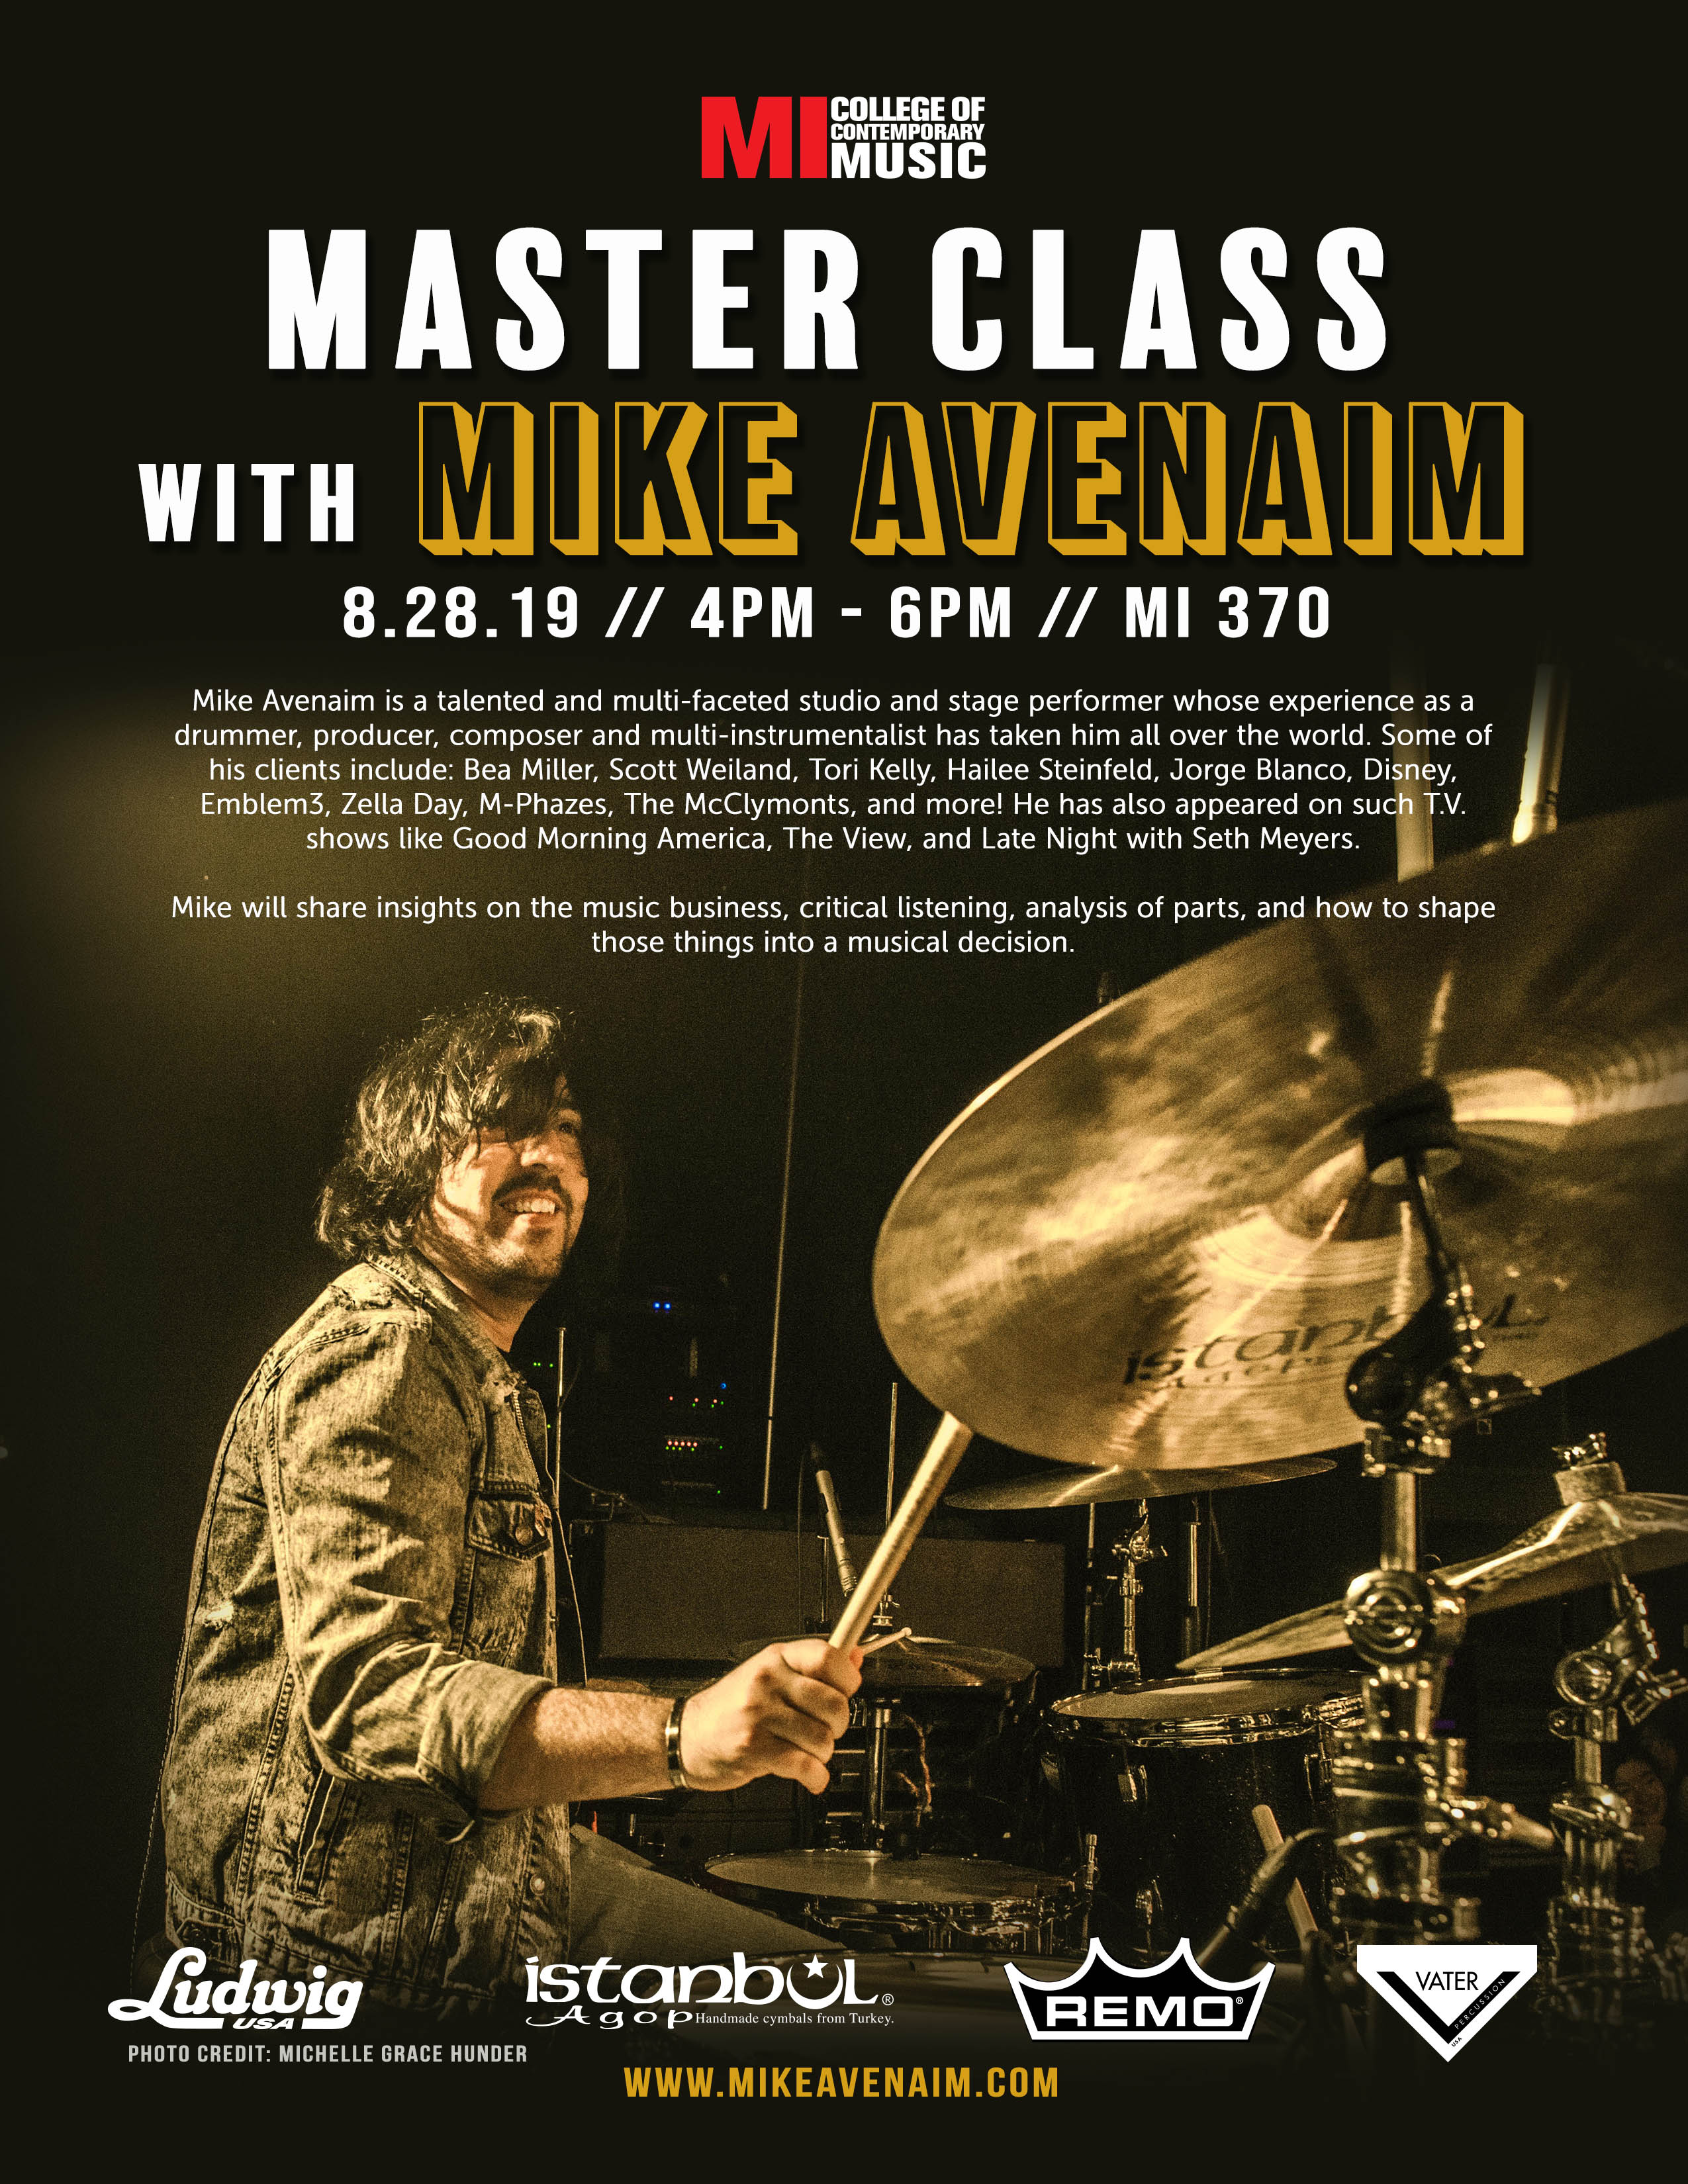 MASTERCLASS MIKE AVENAIM WEDNESDAY, AUGUST 28, 2019, 4 – 6PM